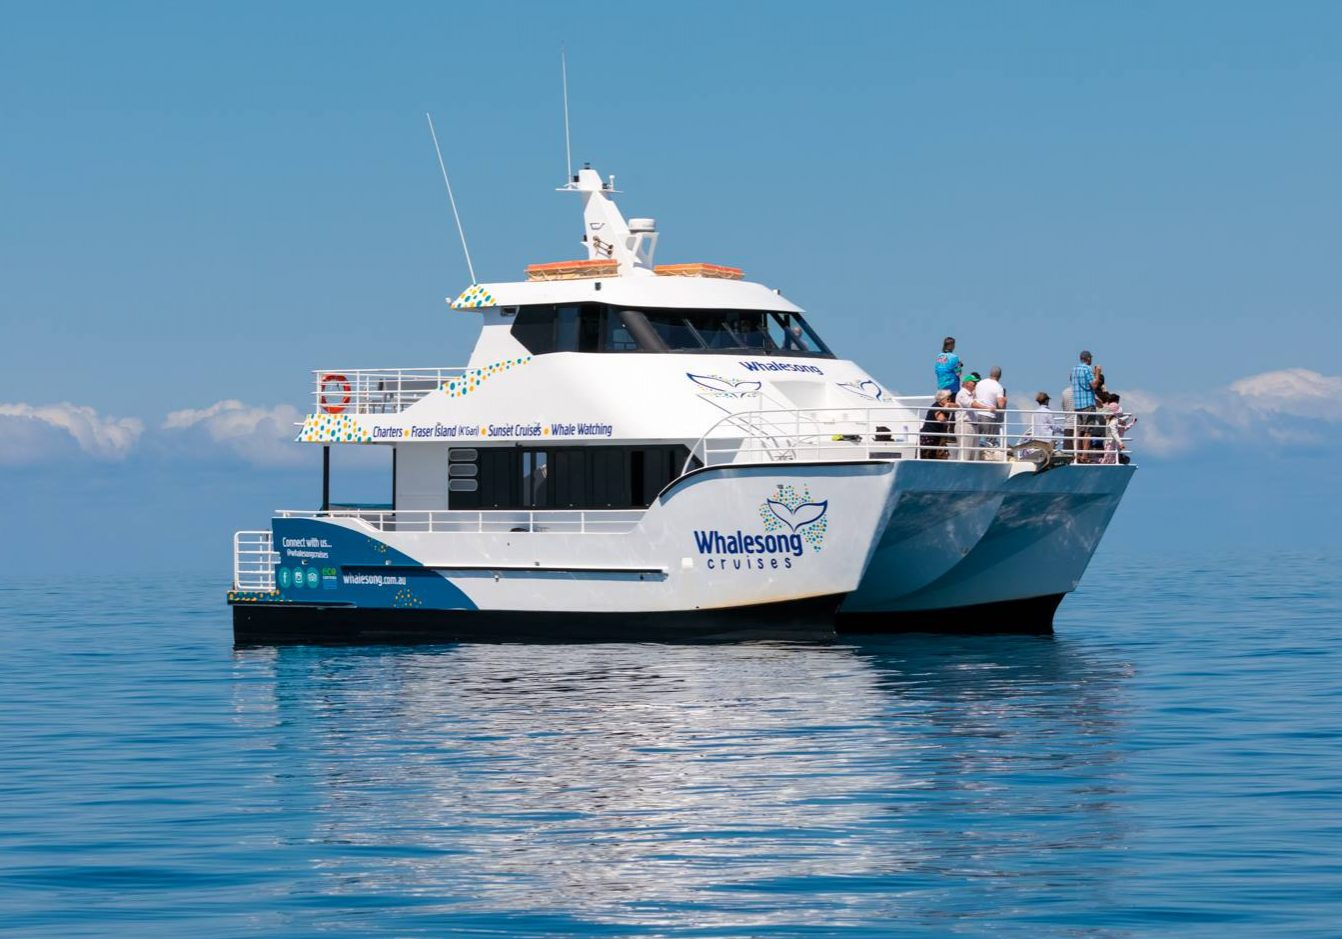 Whalesong Cruises Hervey Bay luxury half day tour operator